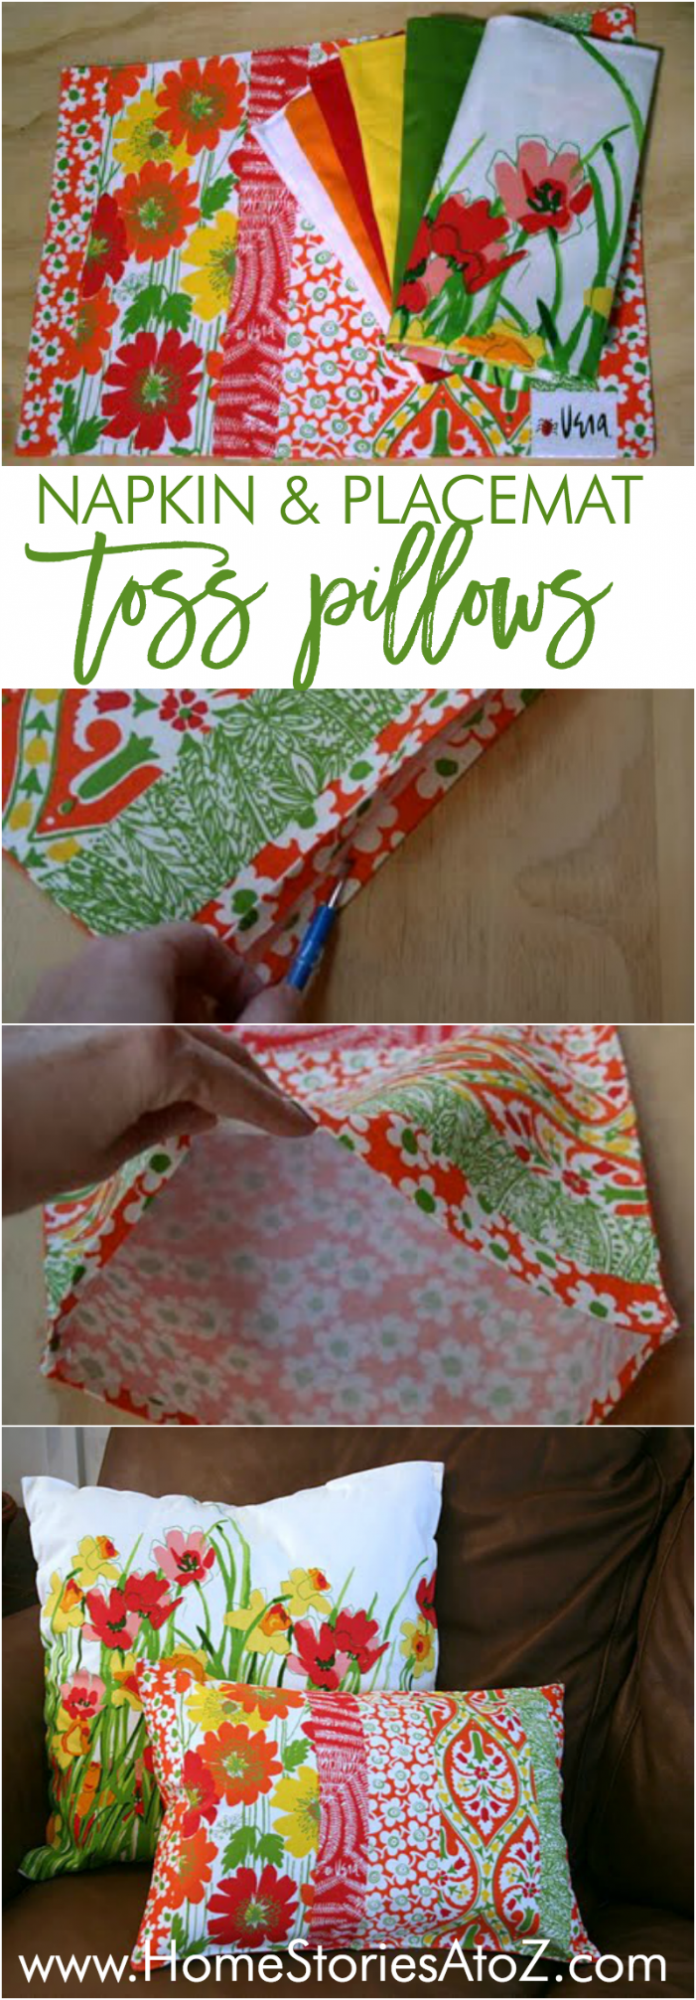 how-to-turn-napkins-and-placemats-into-toss-pillows